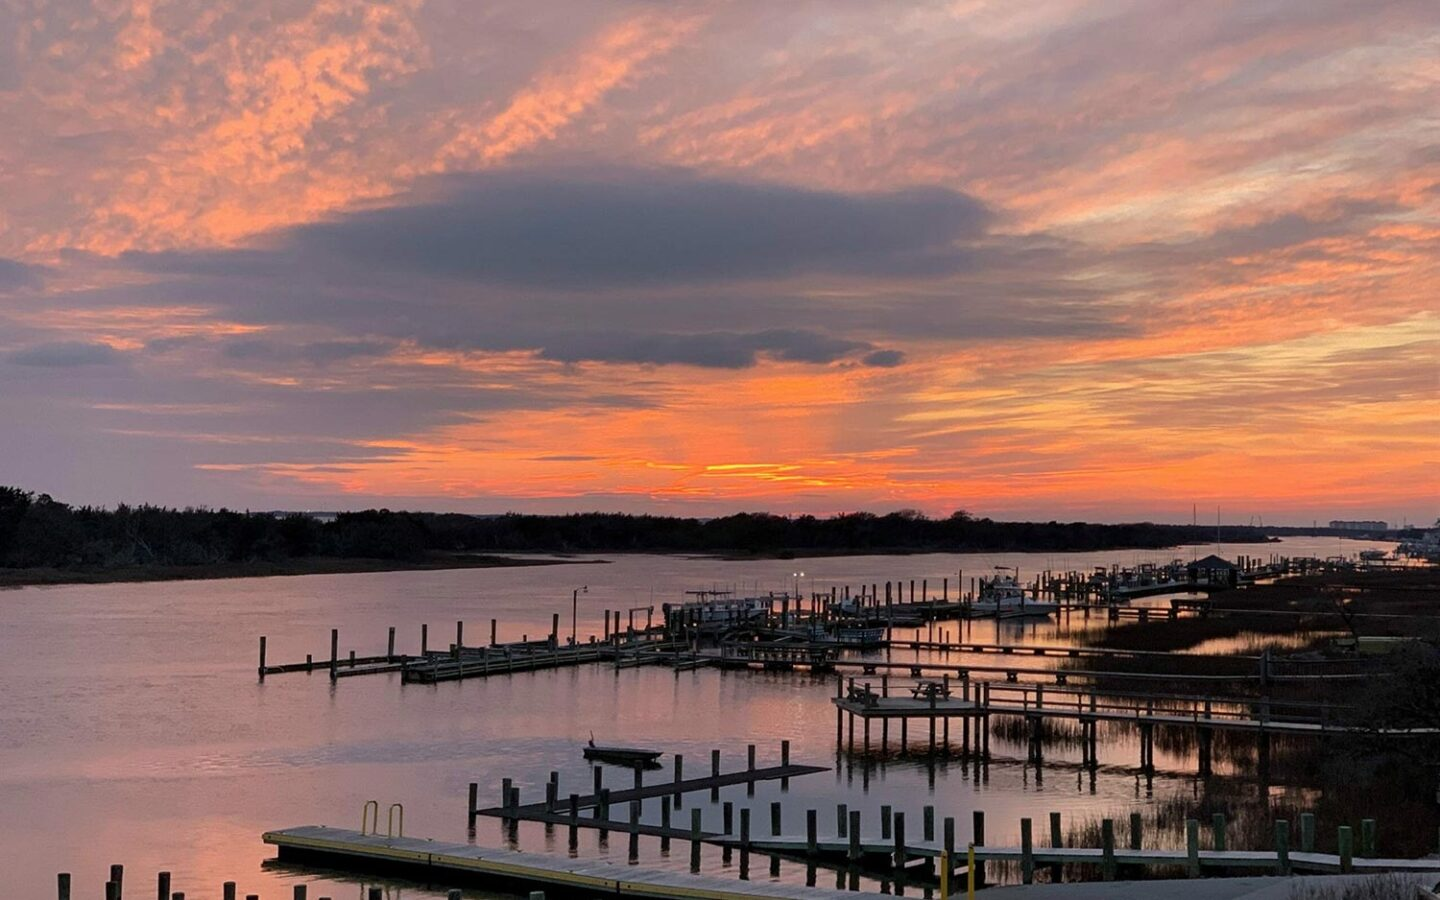 view of a long and wide river with many docks on the edge during sunset